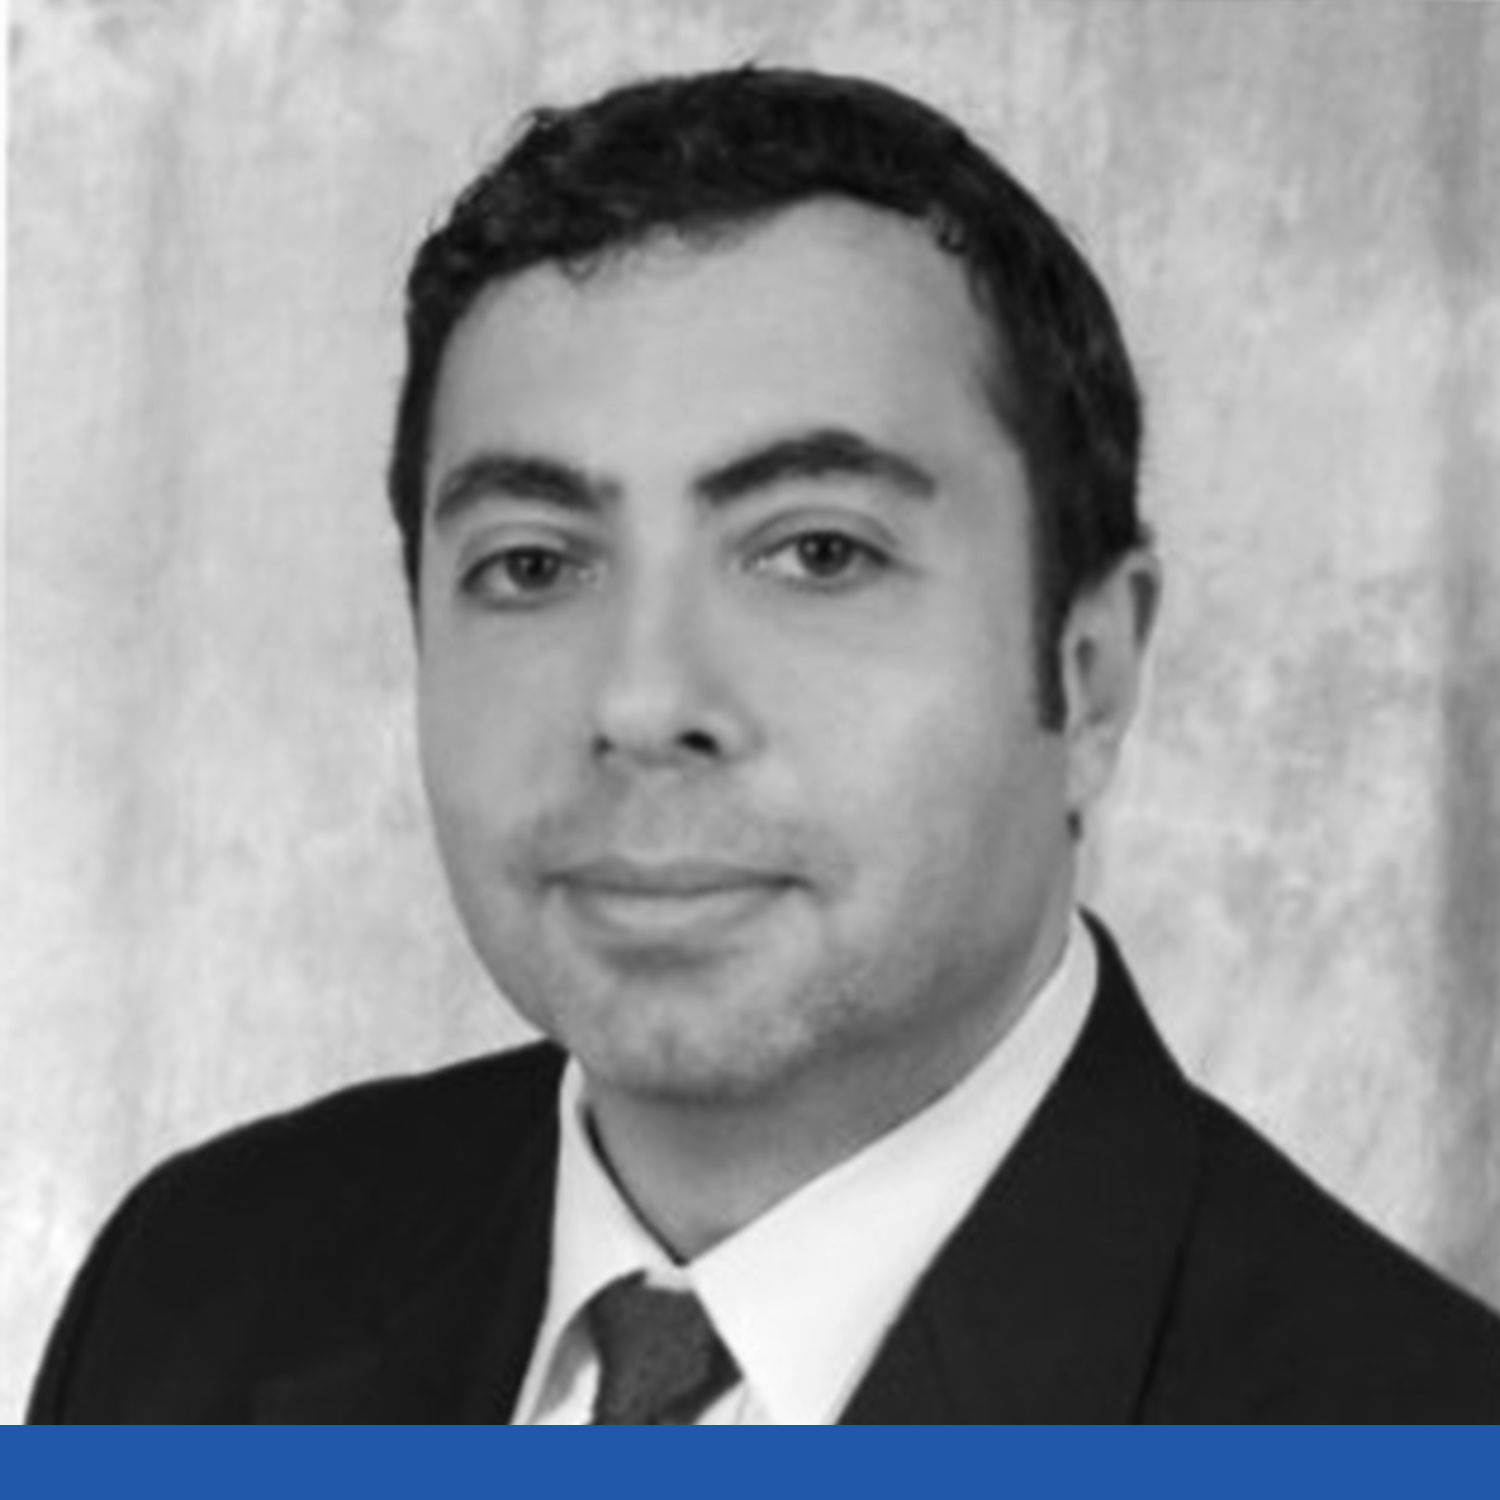 dimitrios angelis - General Counsel